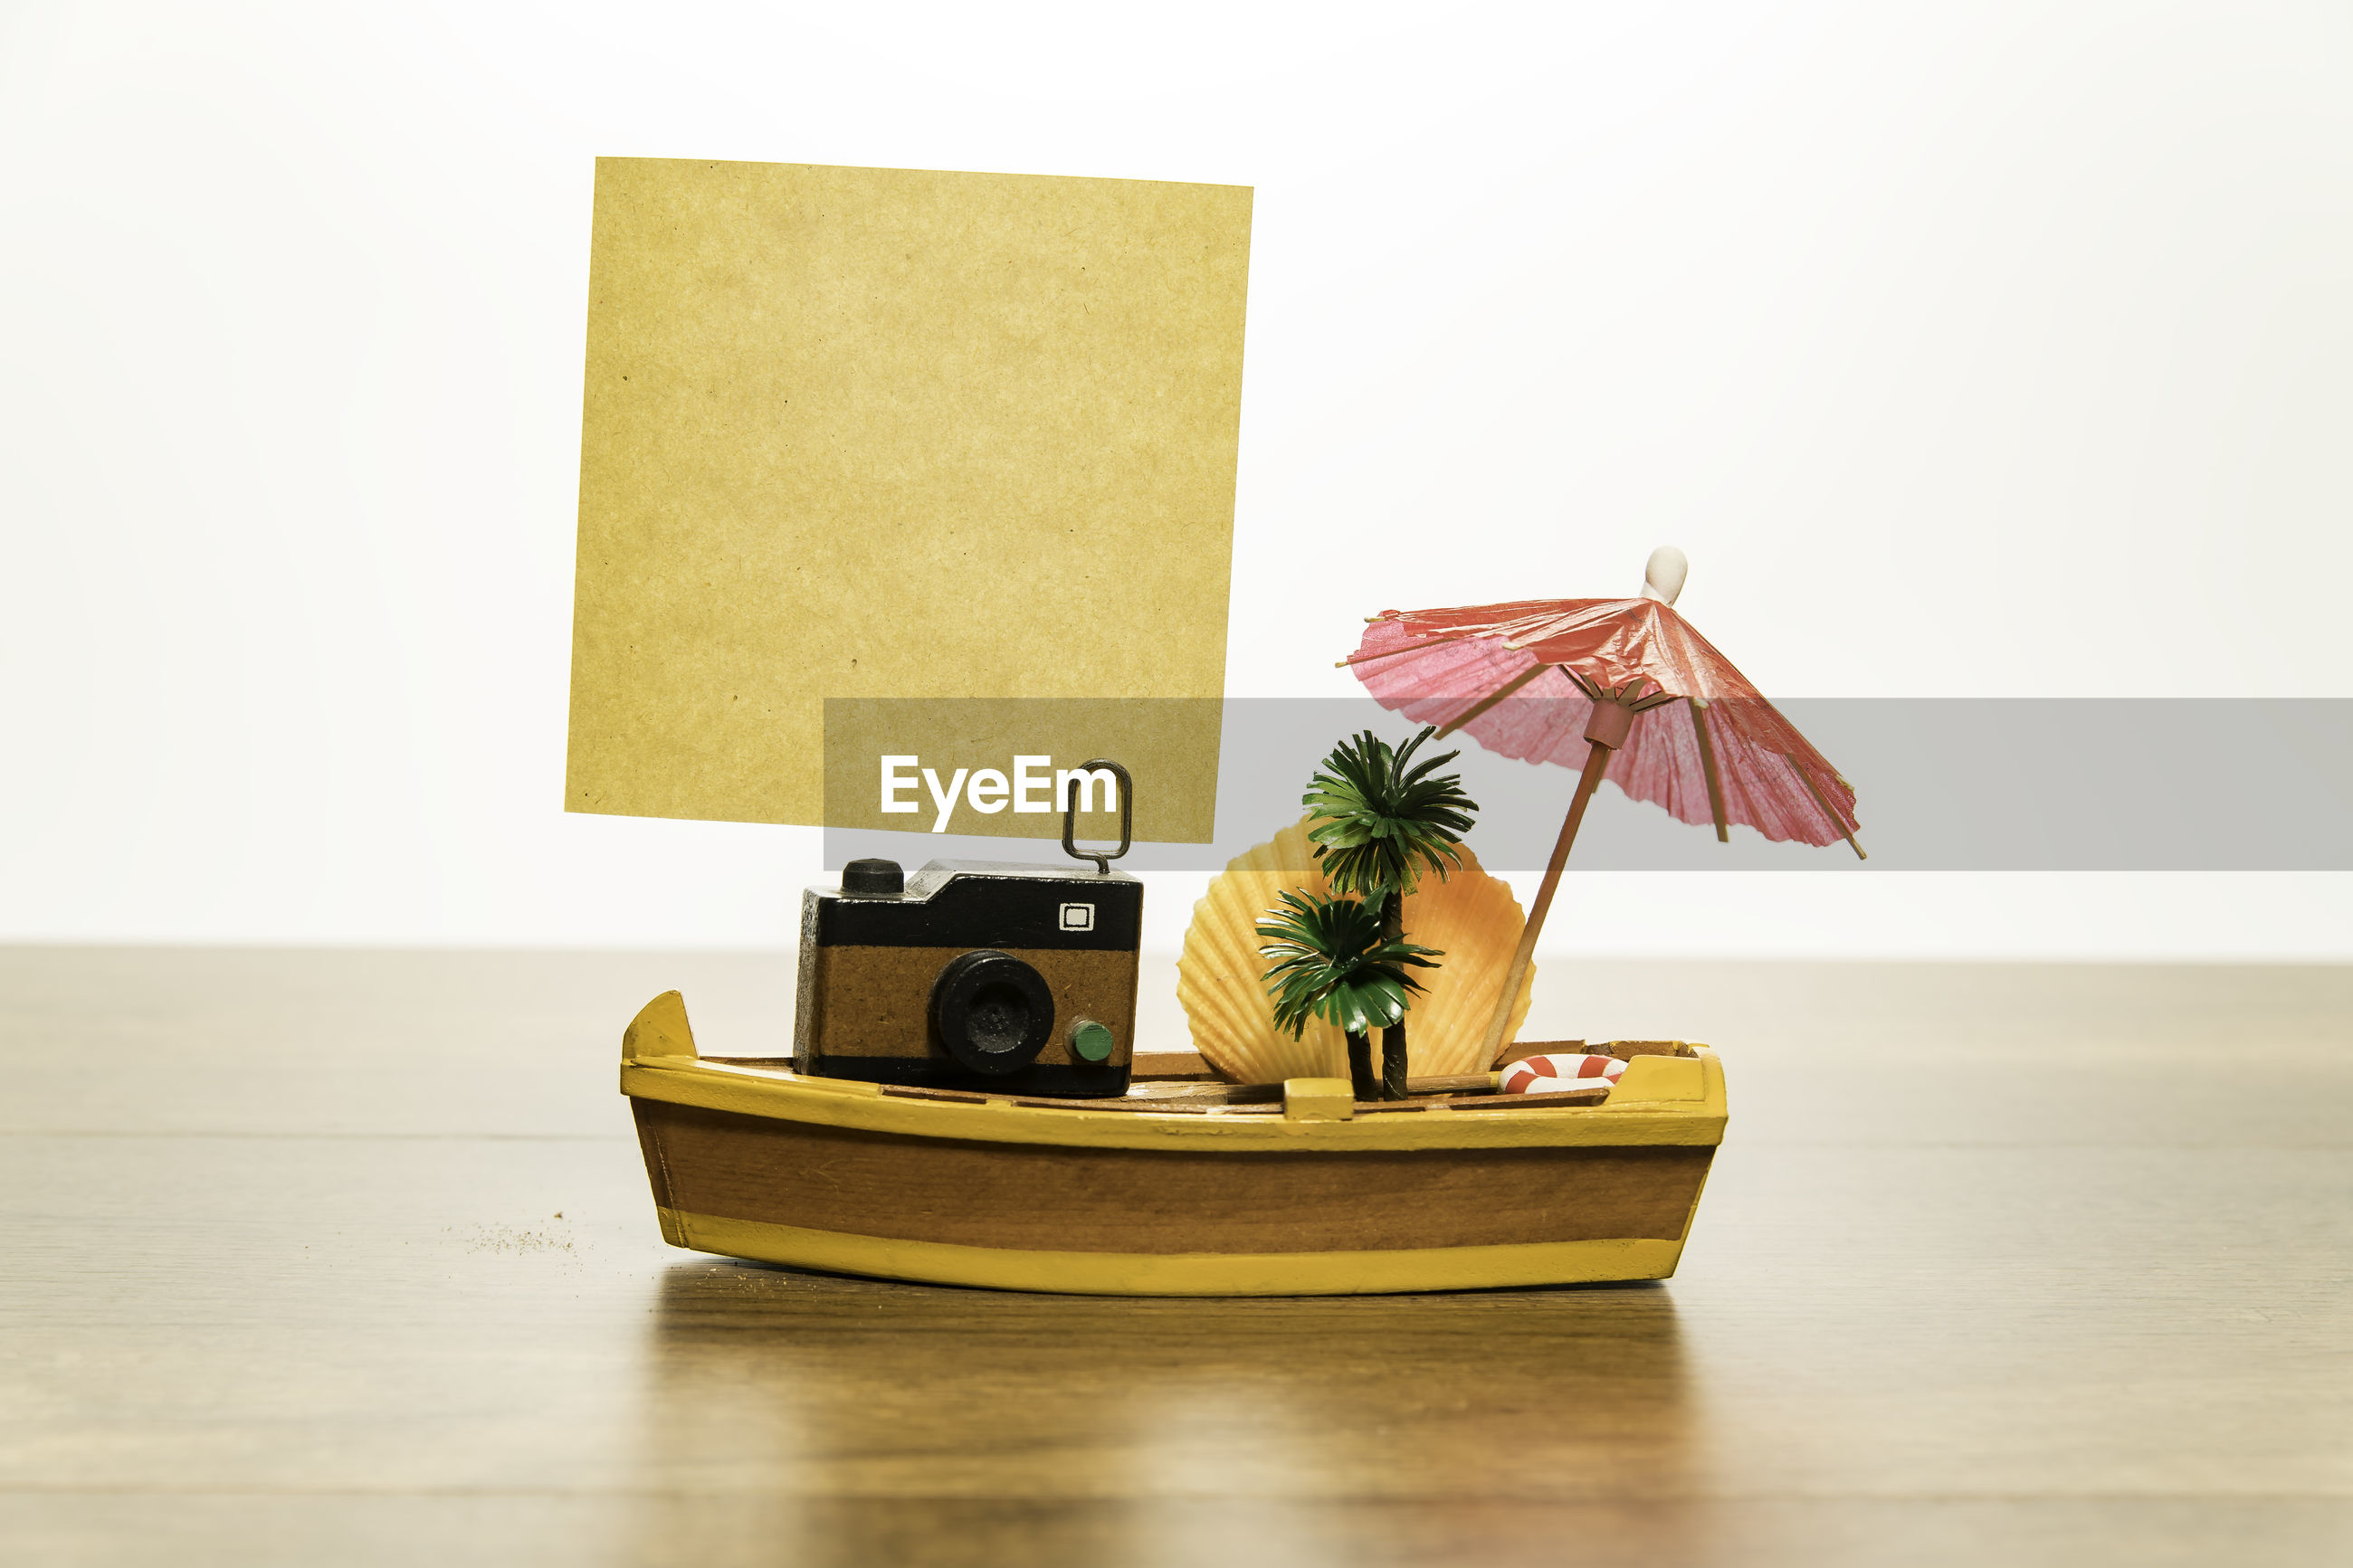 Container on boat on table against white background